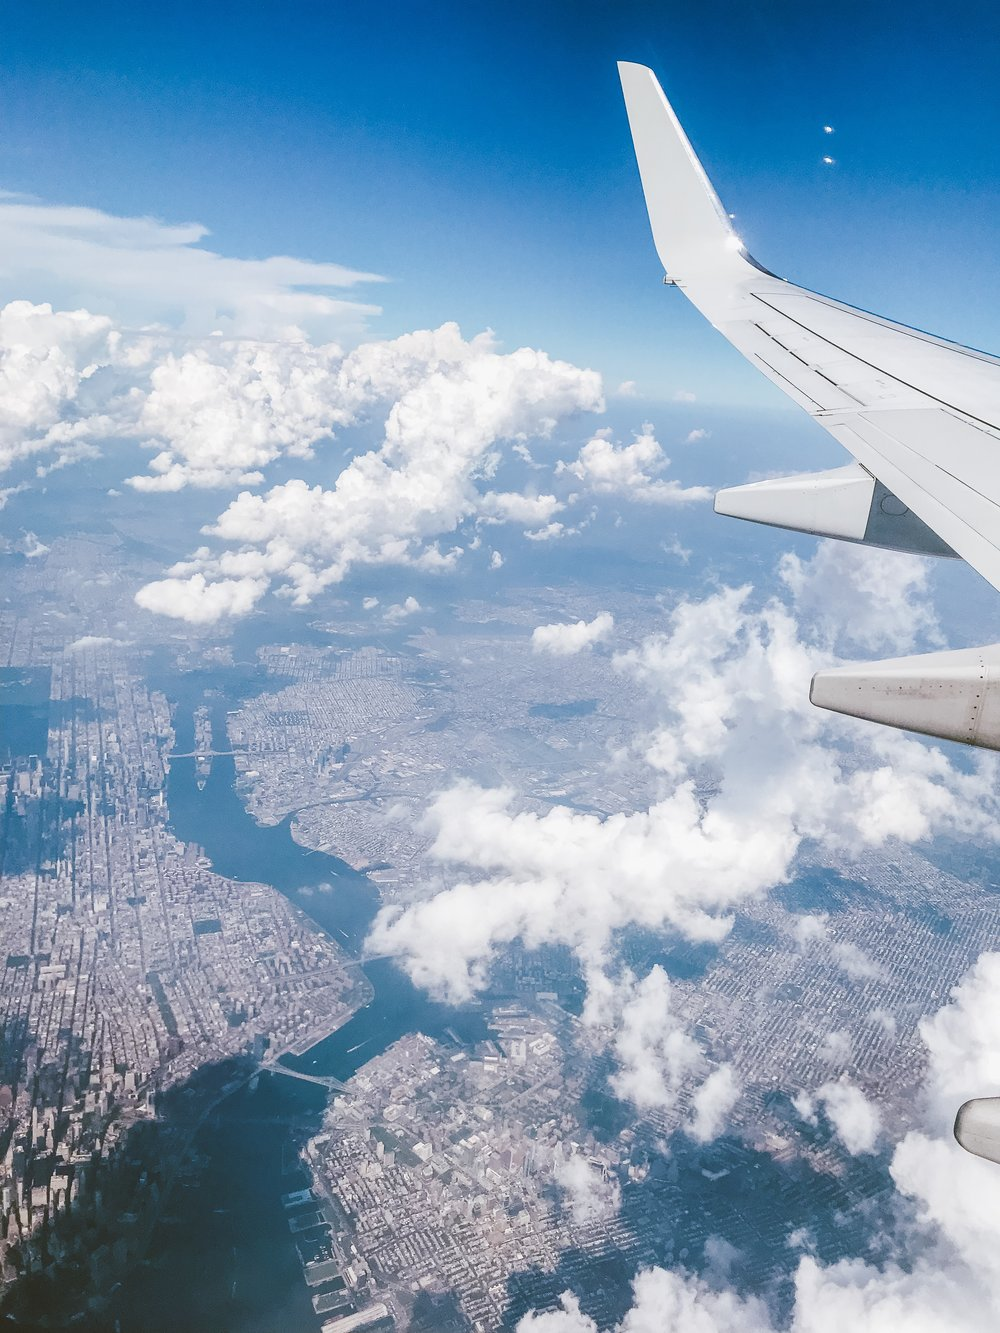 Bre Sheppard - My First NYFW - View Of NYC From The Plane.JPG